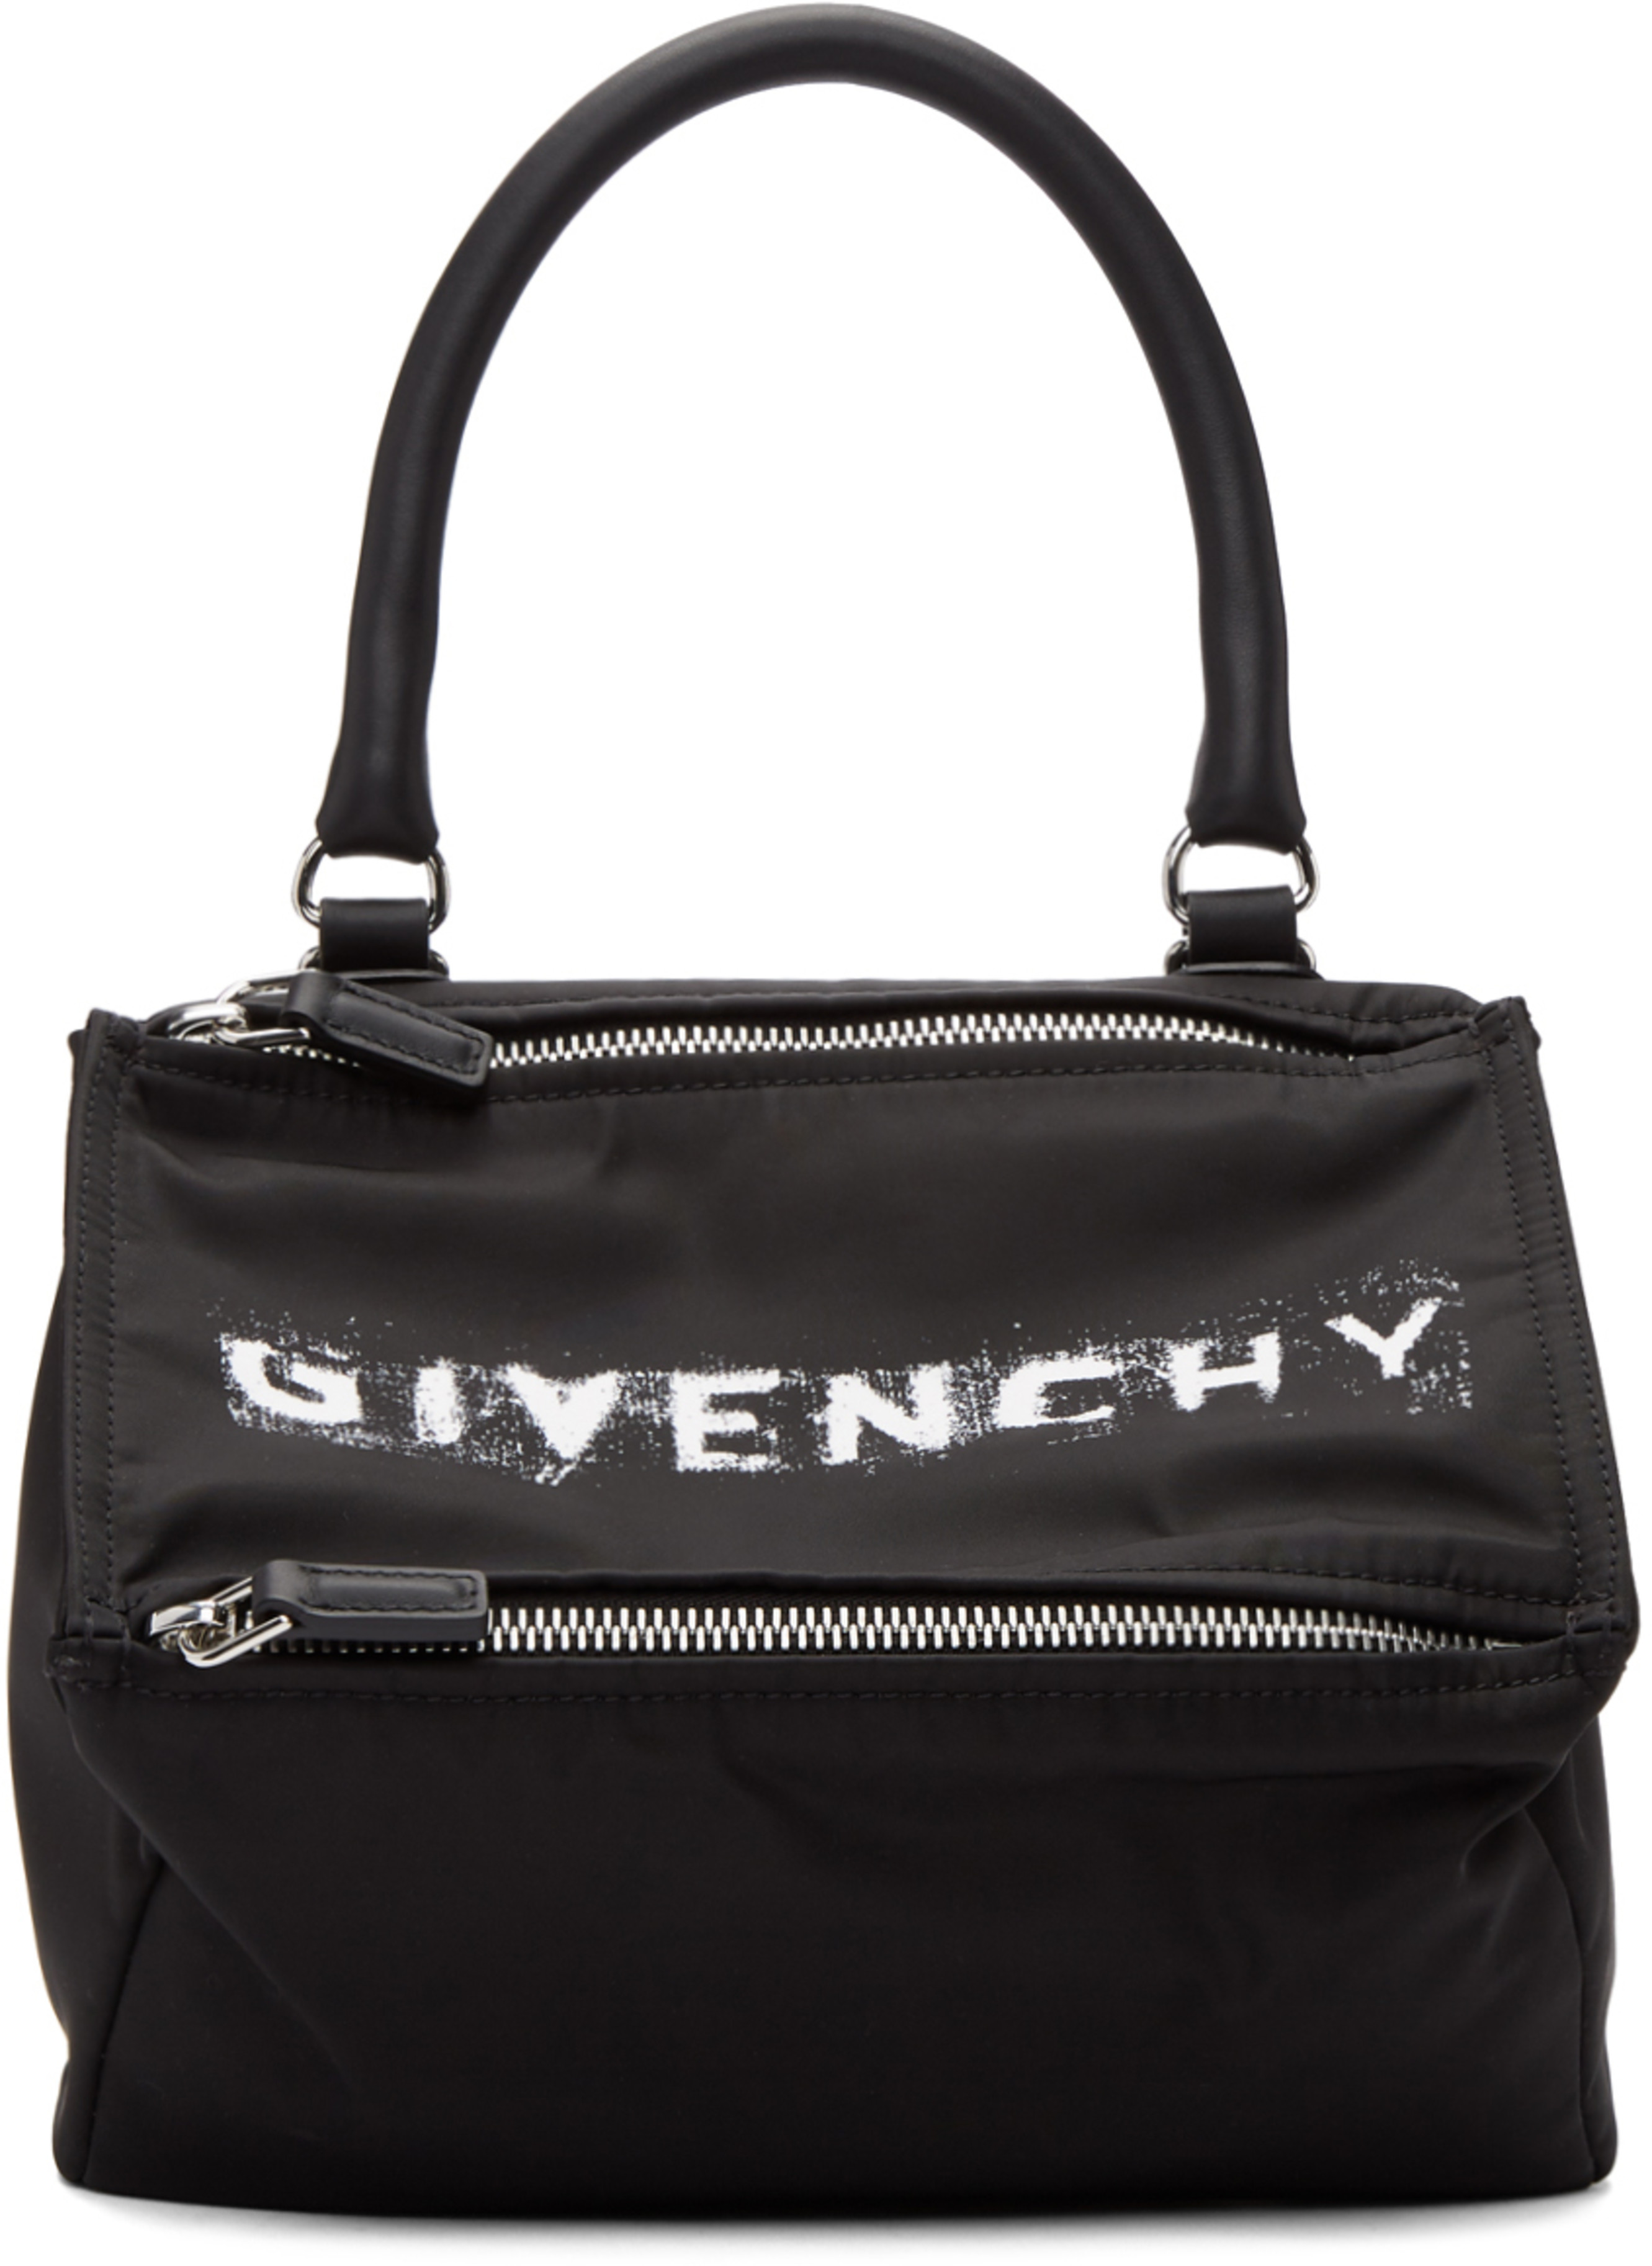 375d1add2e Givenchy bags for Women | SSENSE